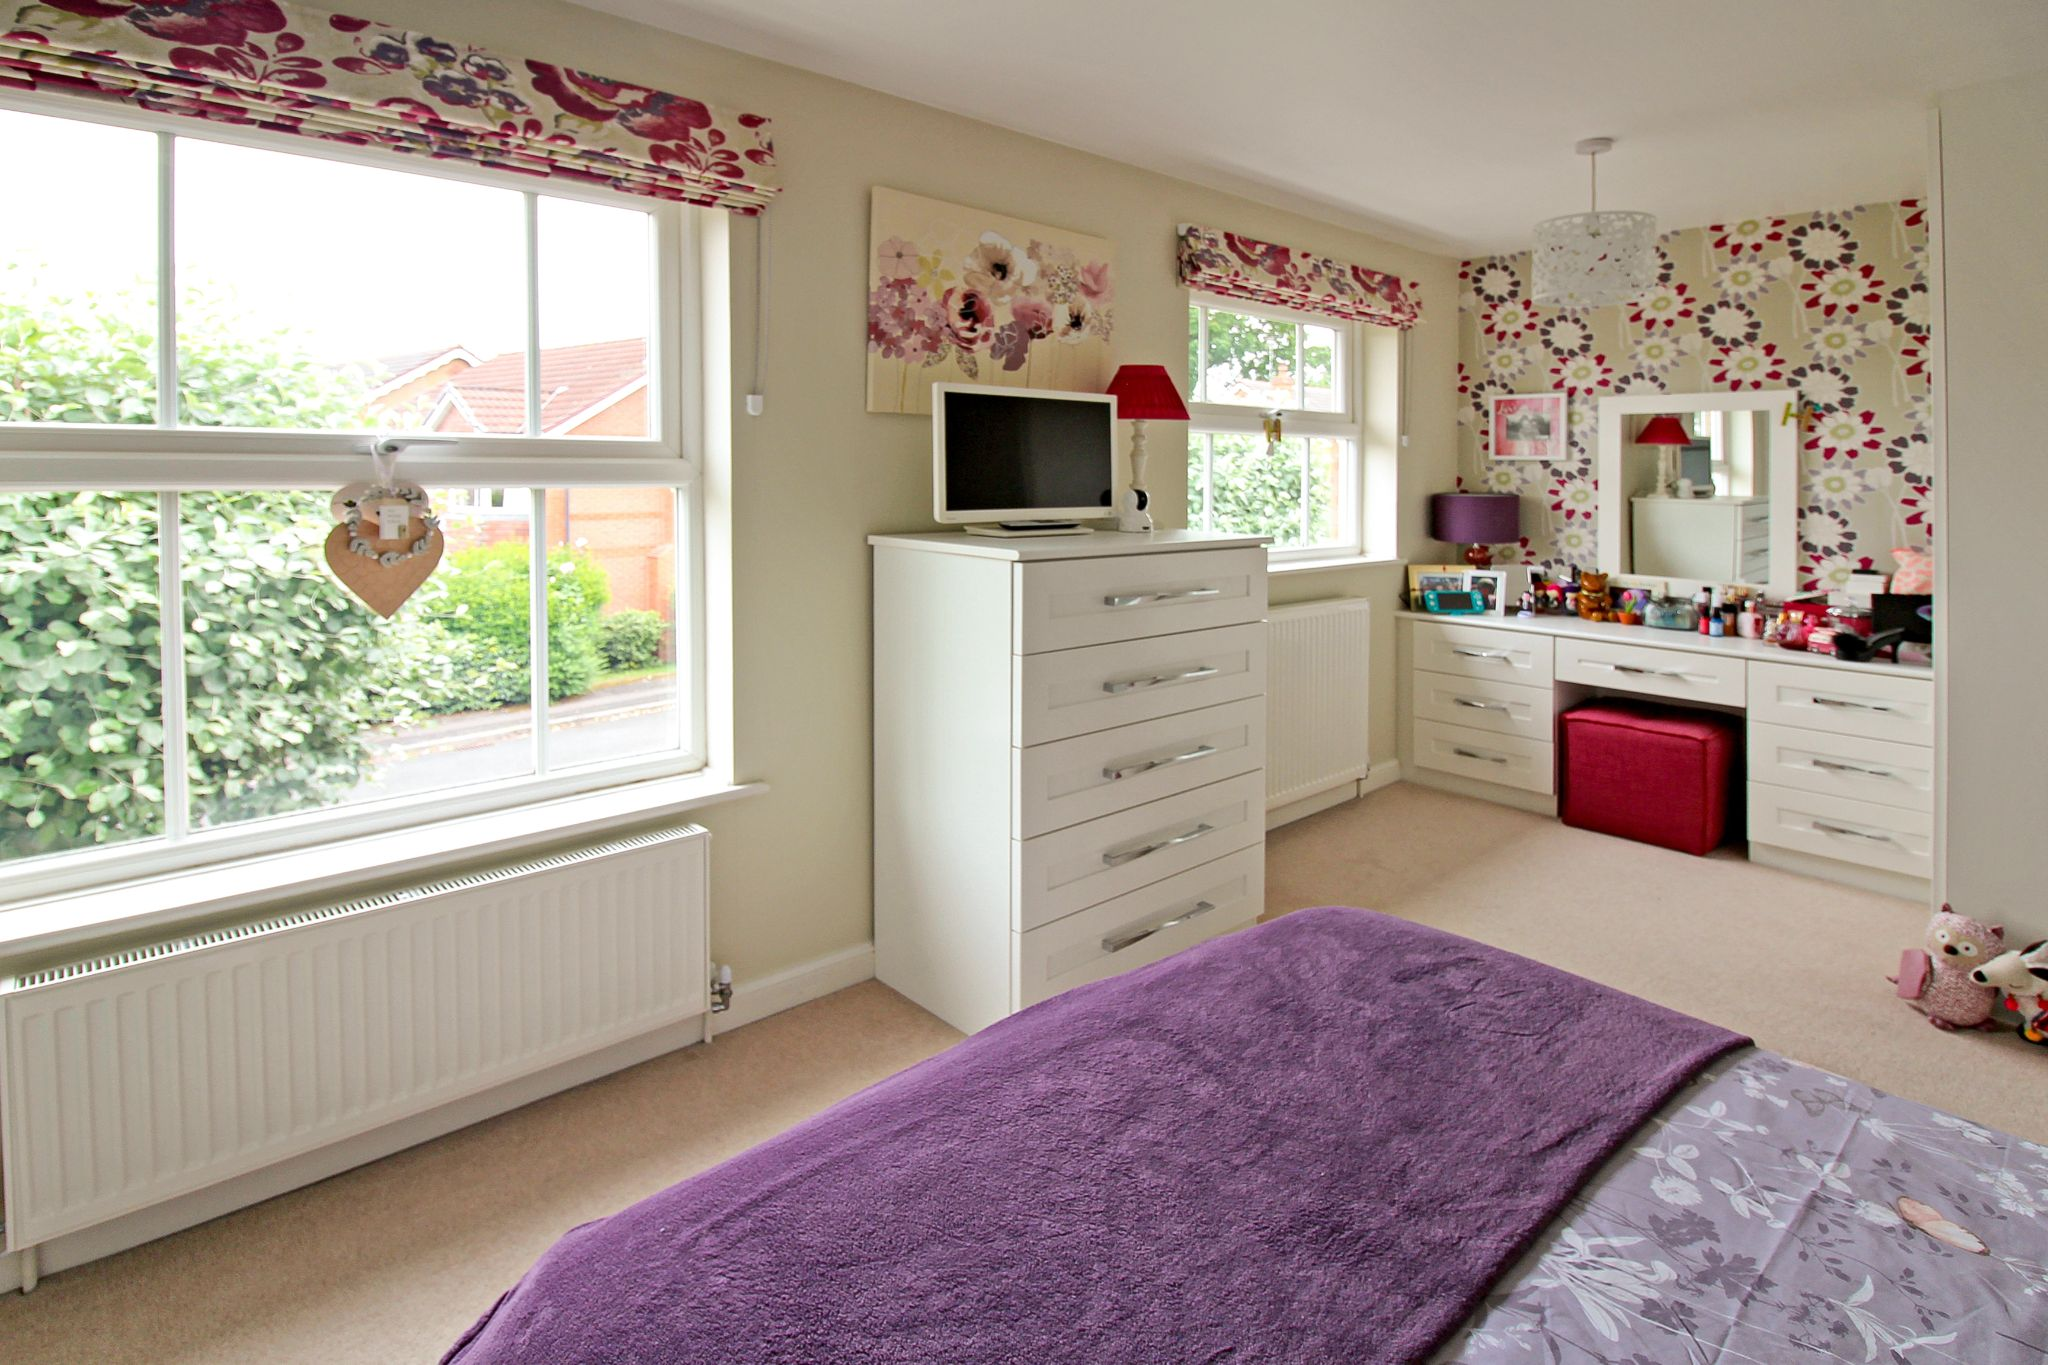 4 bedroom detached house SSTC in Solihull - Photograph 13.